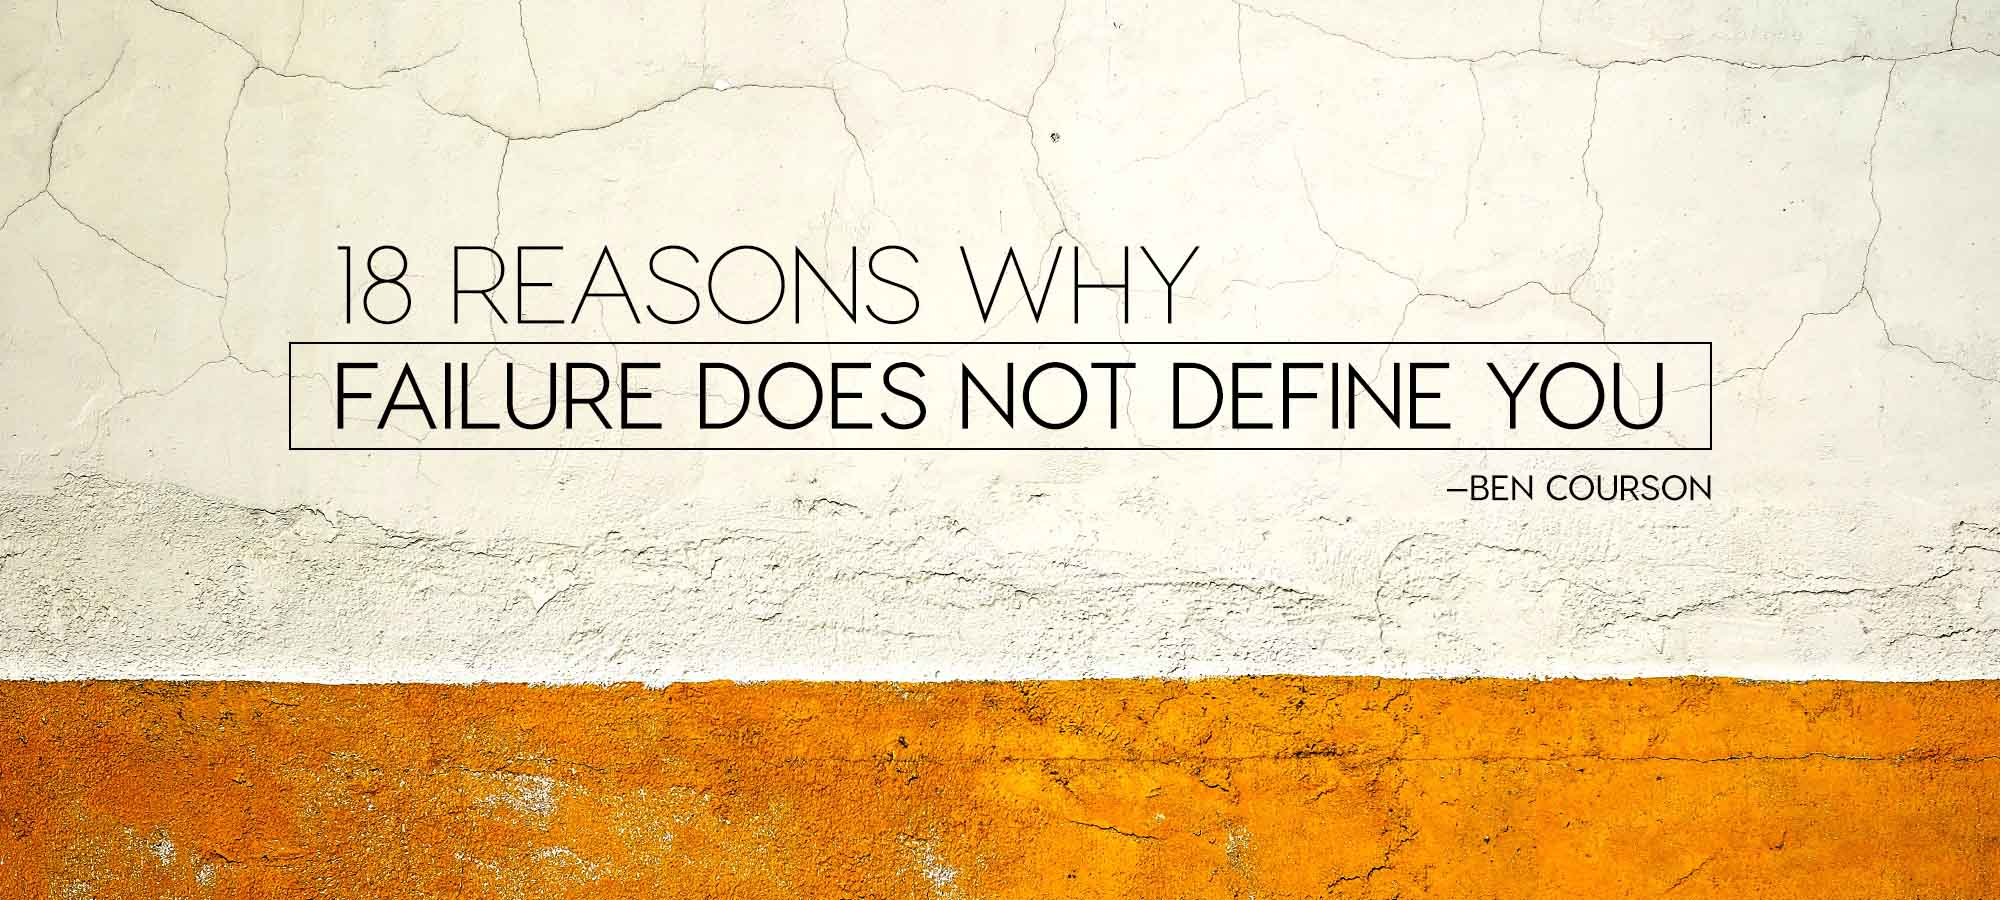 Eighteen Reasons Why Failure Does Not Define You